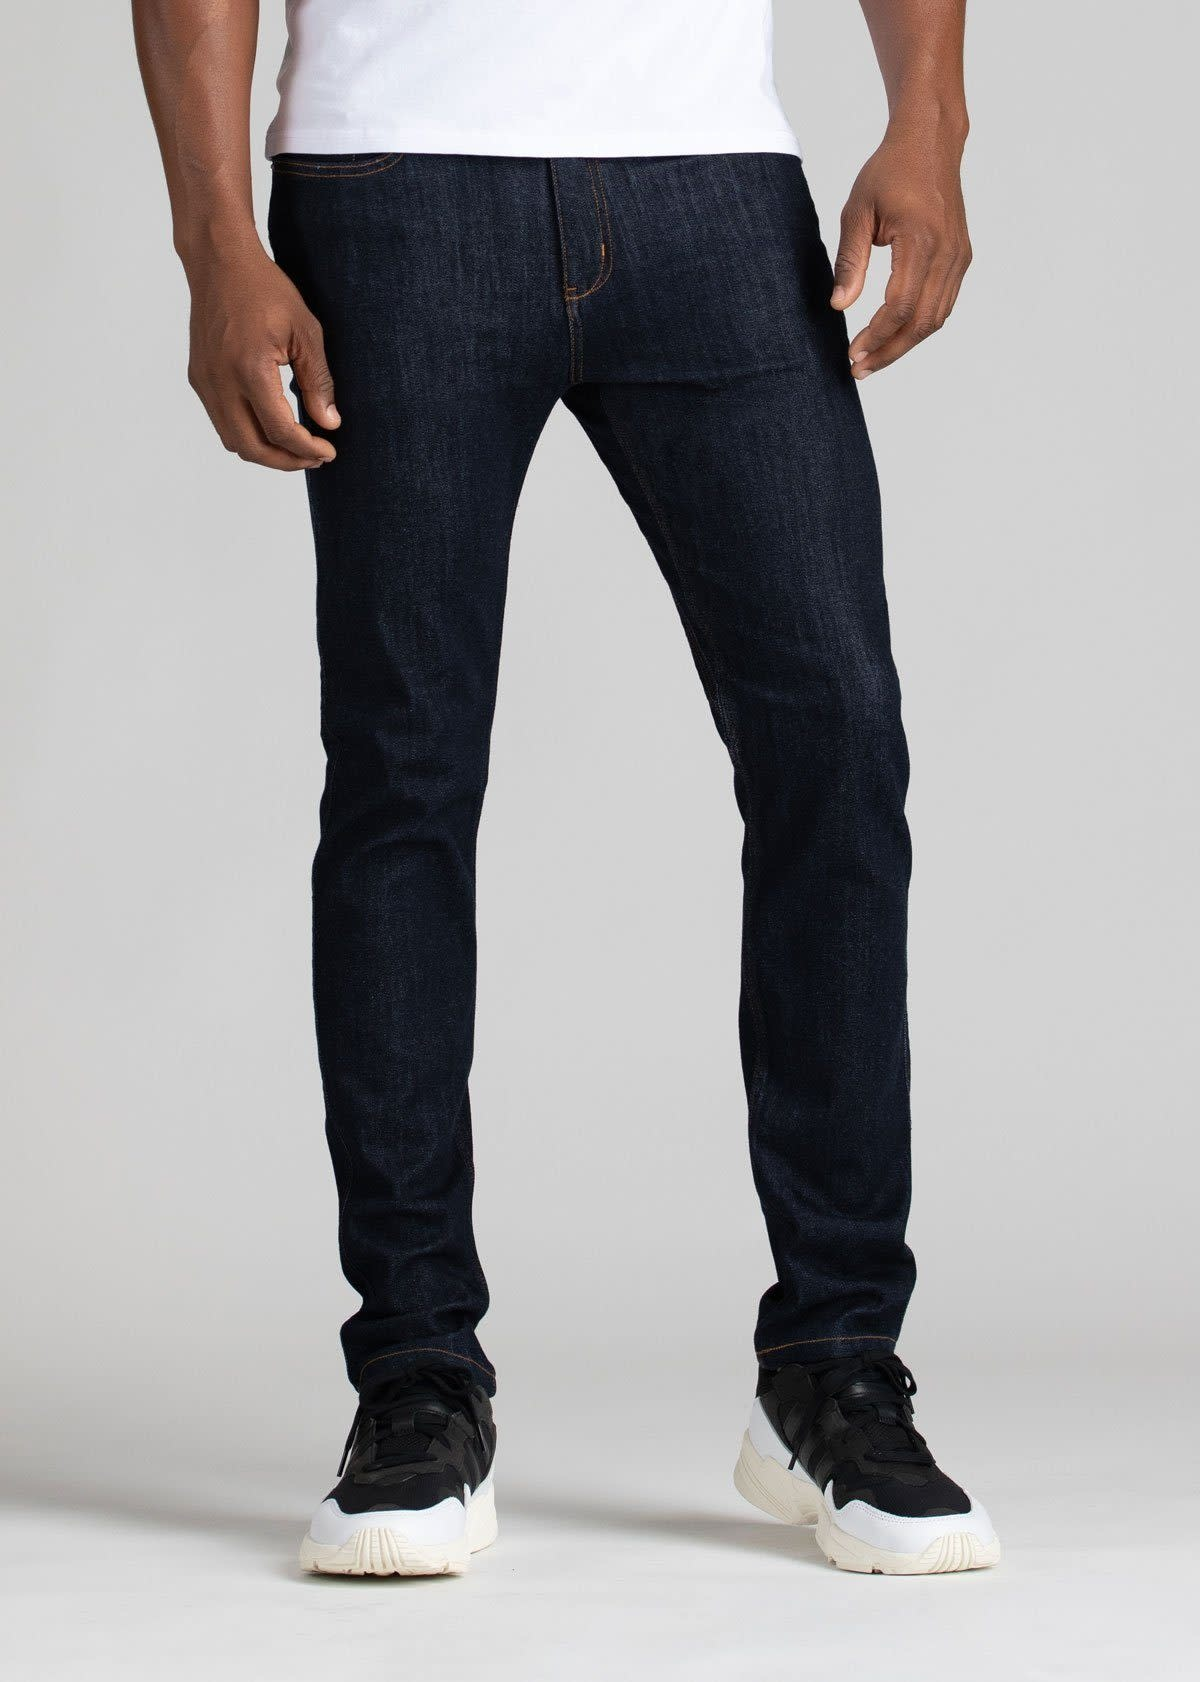 DUER Performance Denim Slim-7